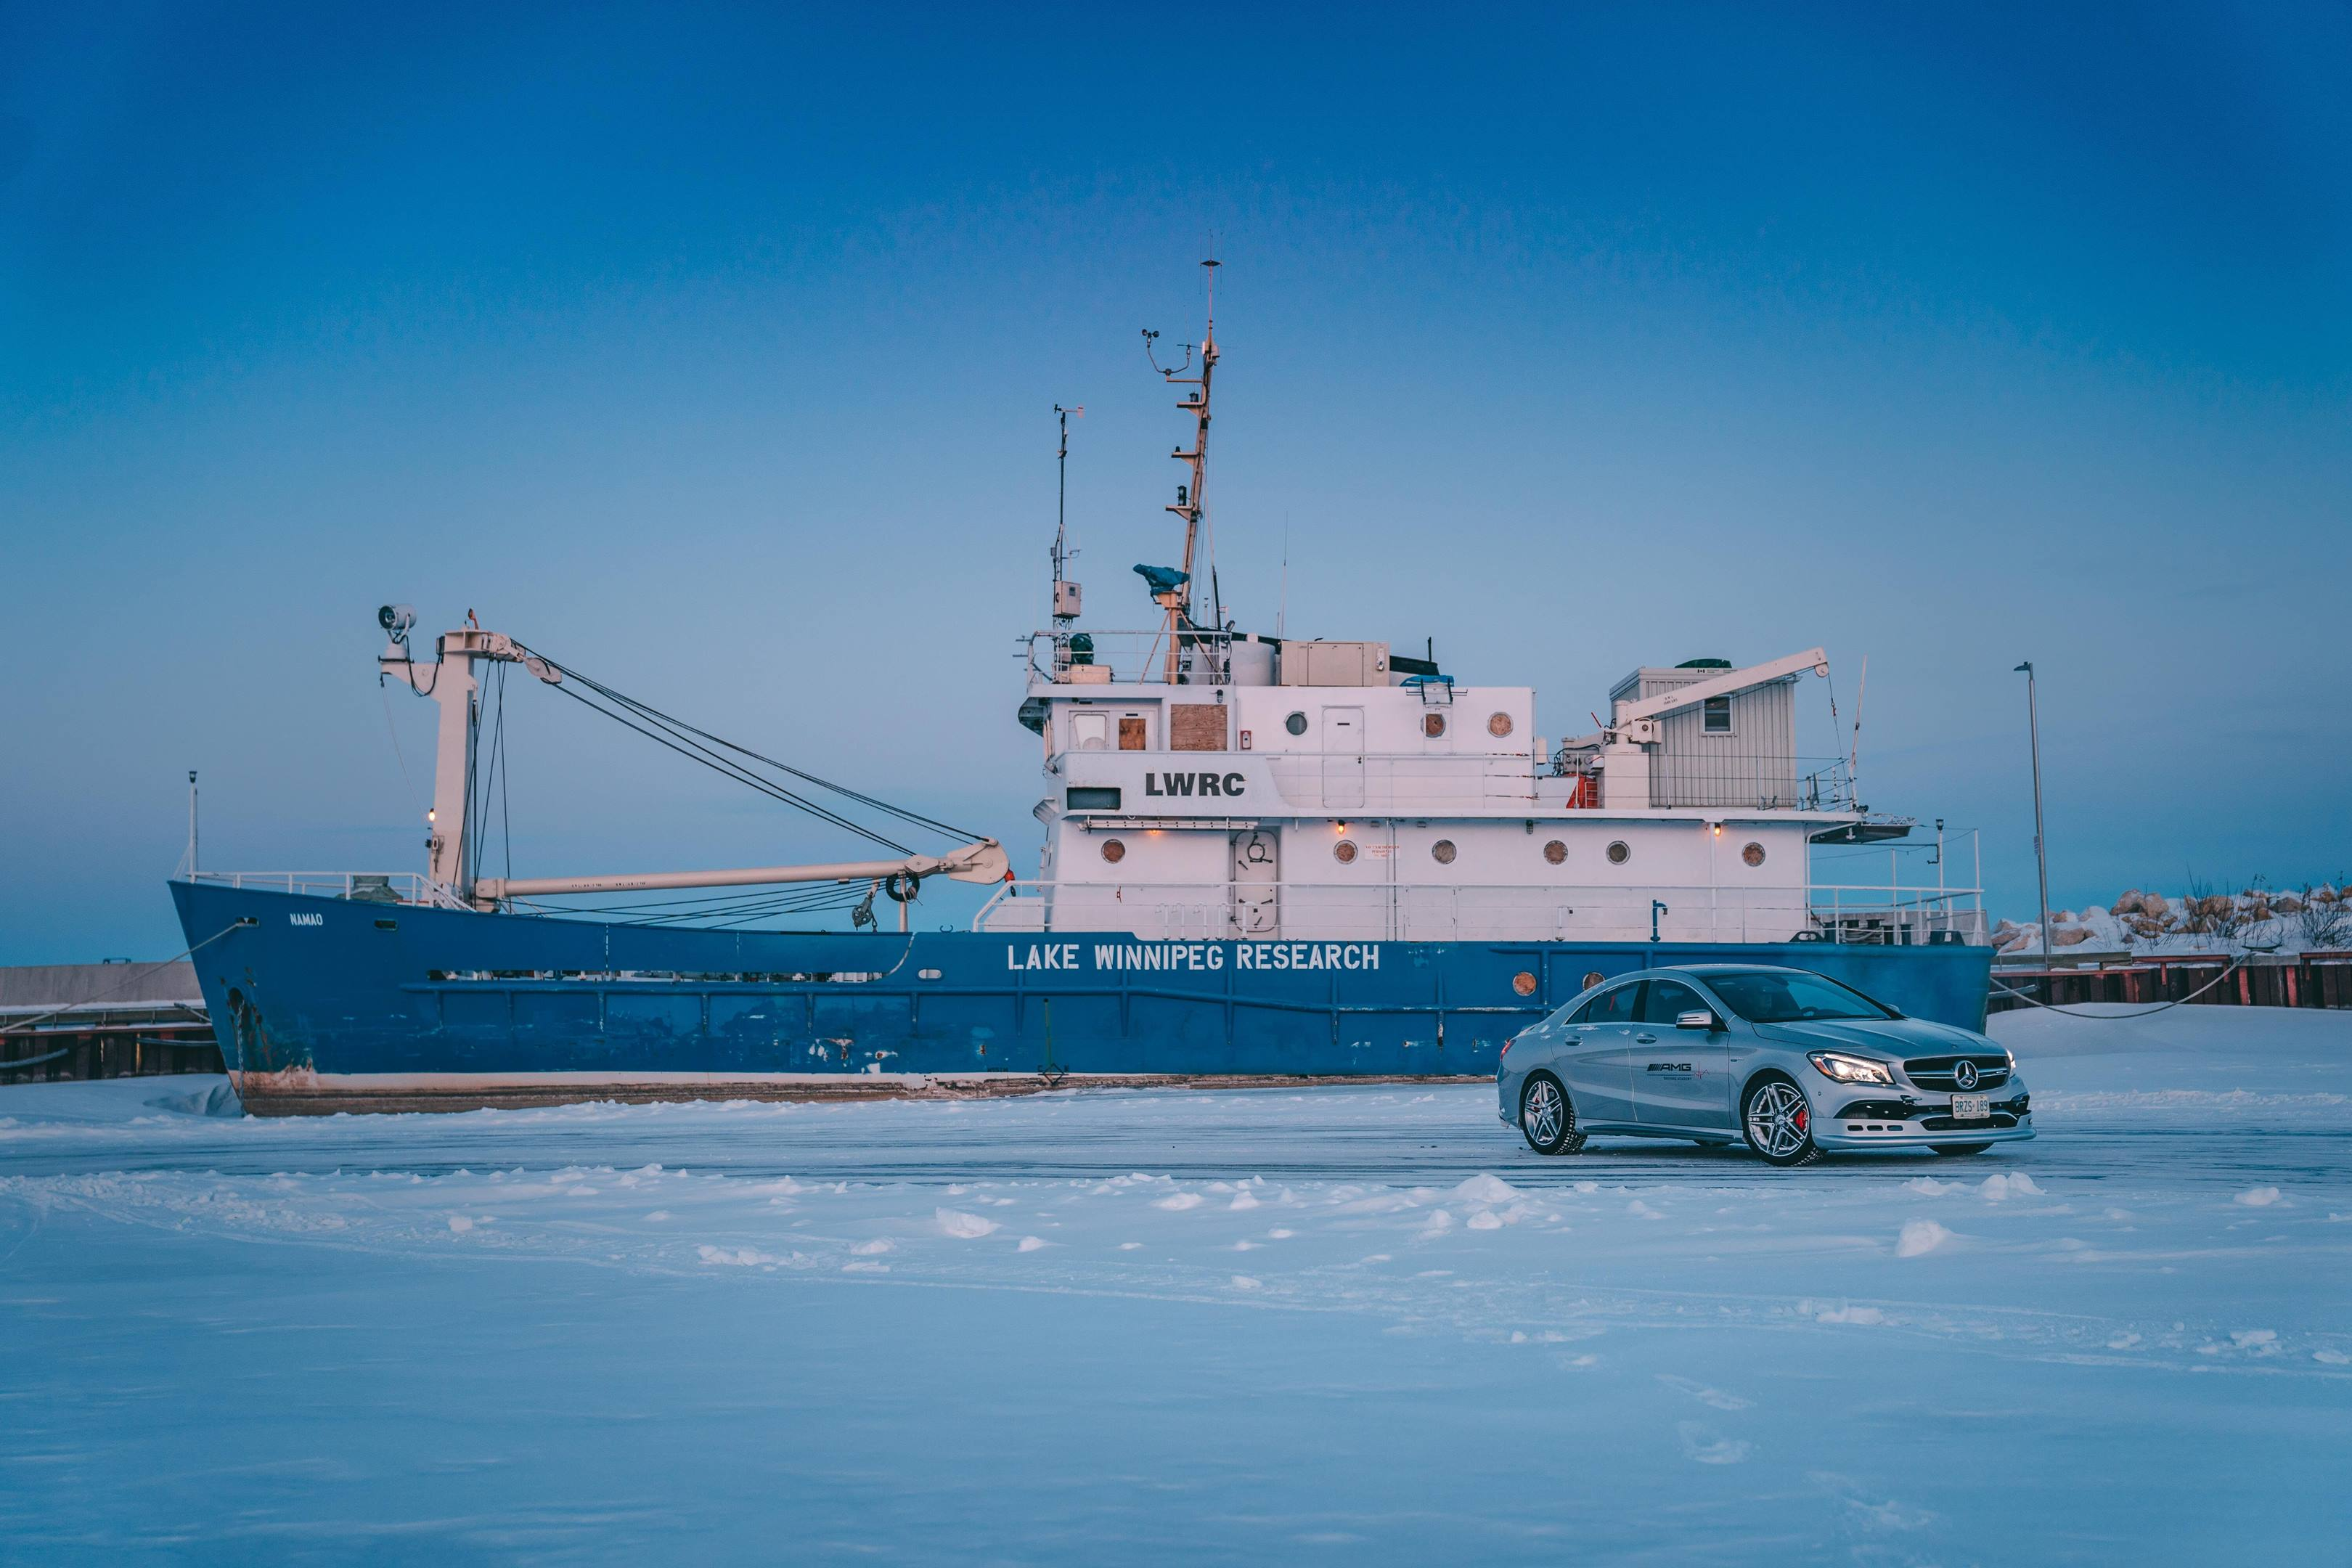 Mercedes-Benz driving school on a frozen lake